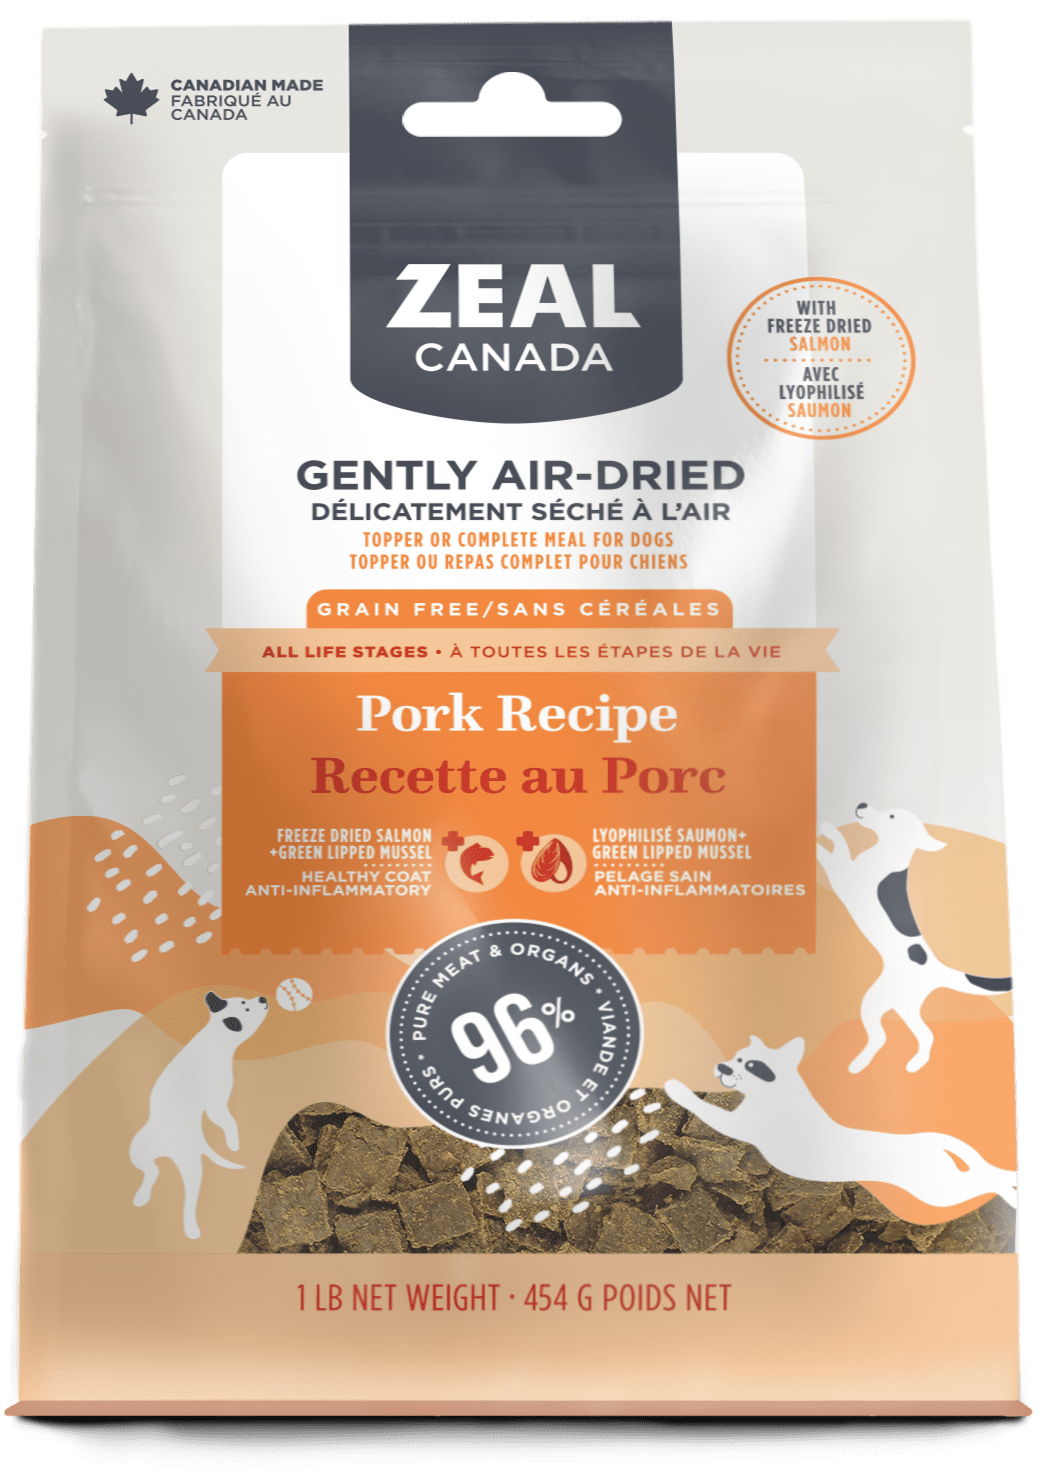 product image for Gently Air-Dried Pork with Freeze-Dried Salmon for Dogs